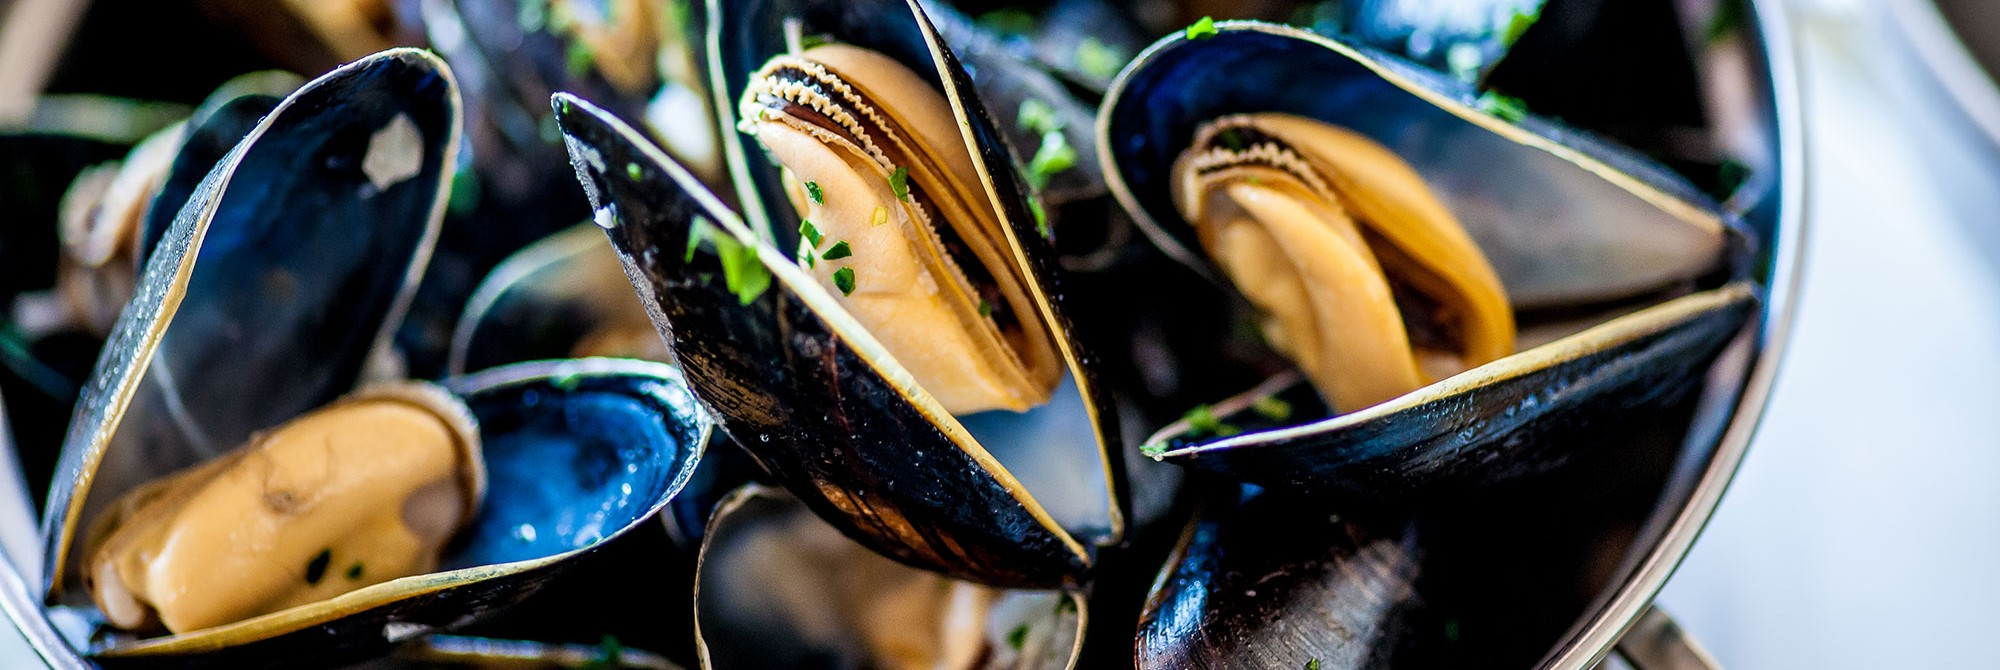 mussels-2